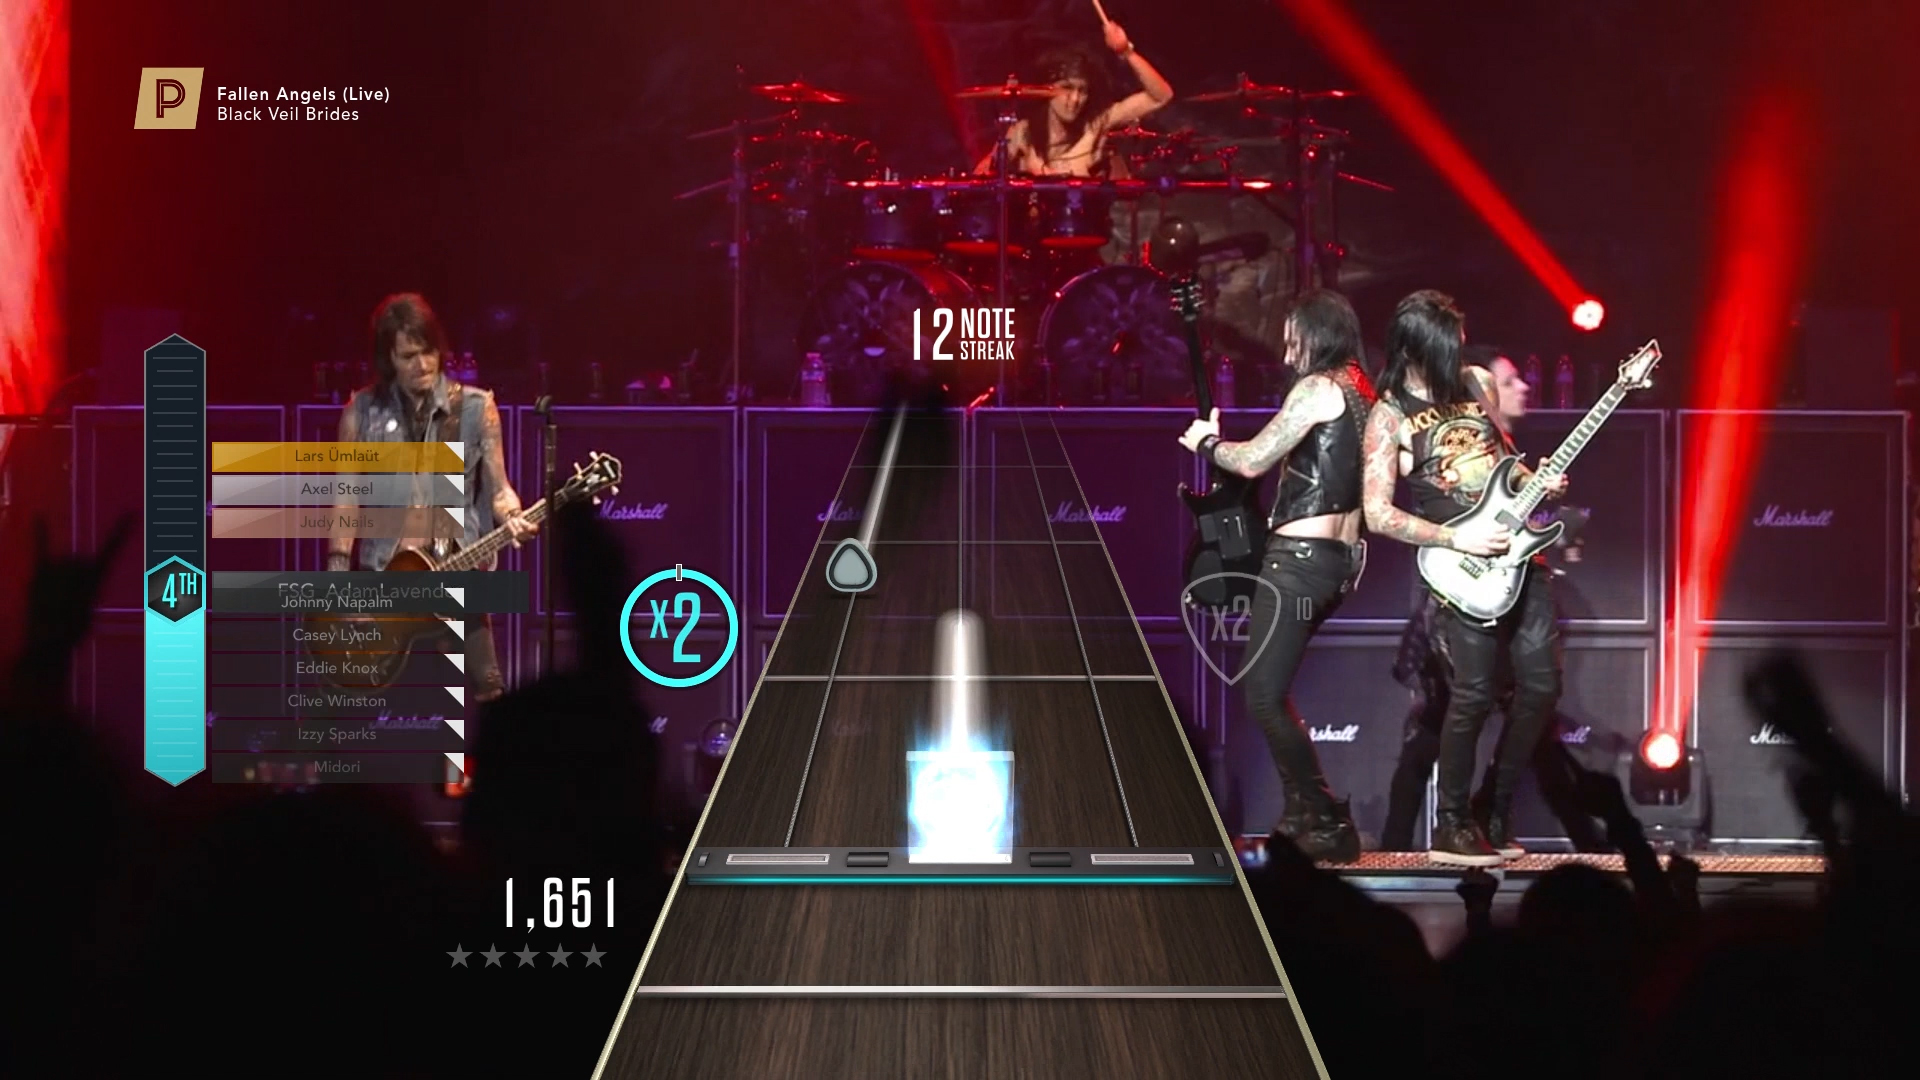 Checking out Guitar Hero Live